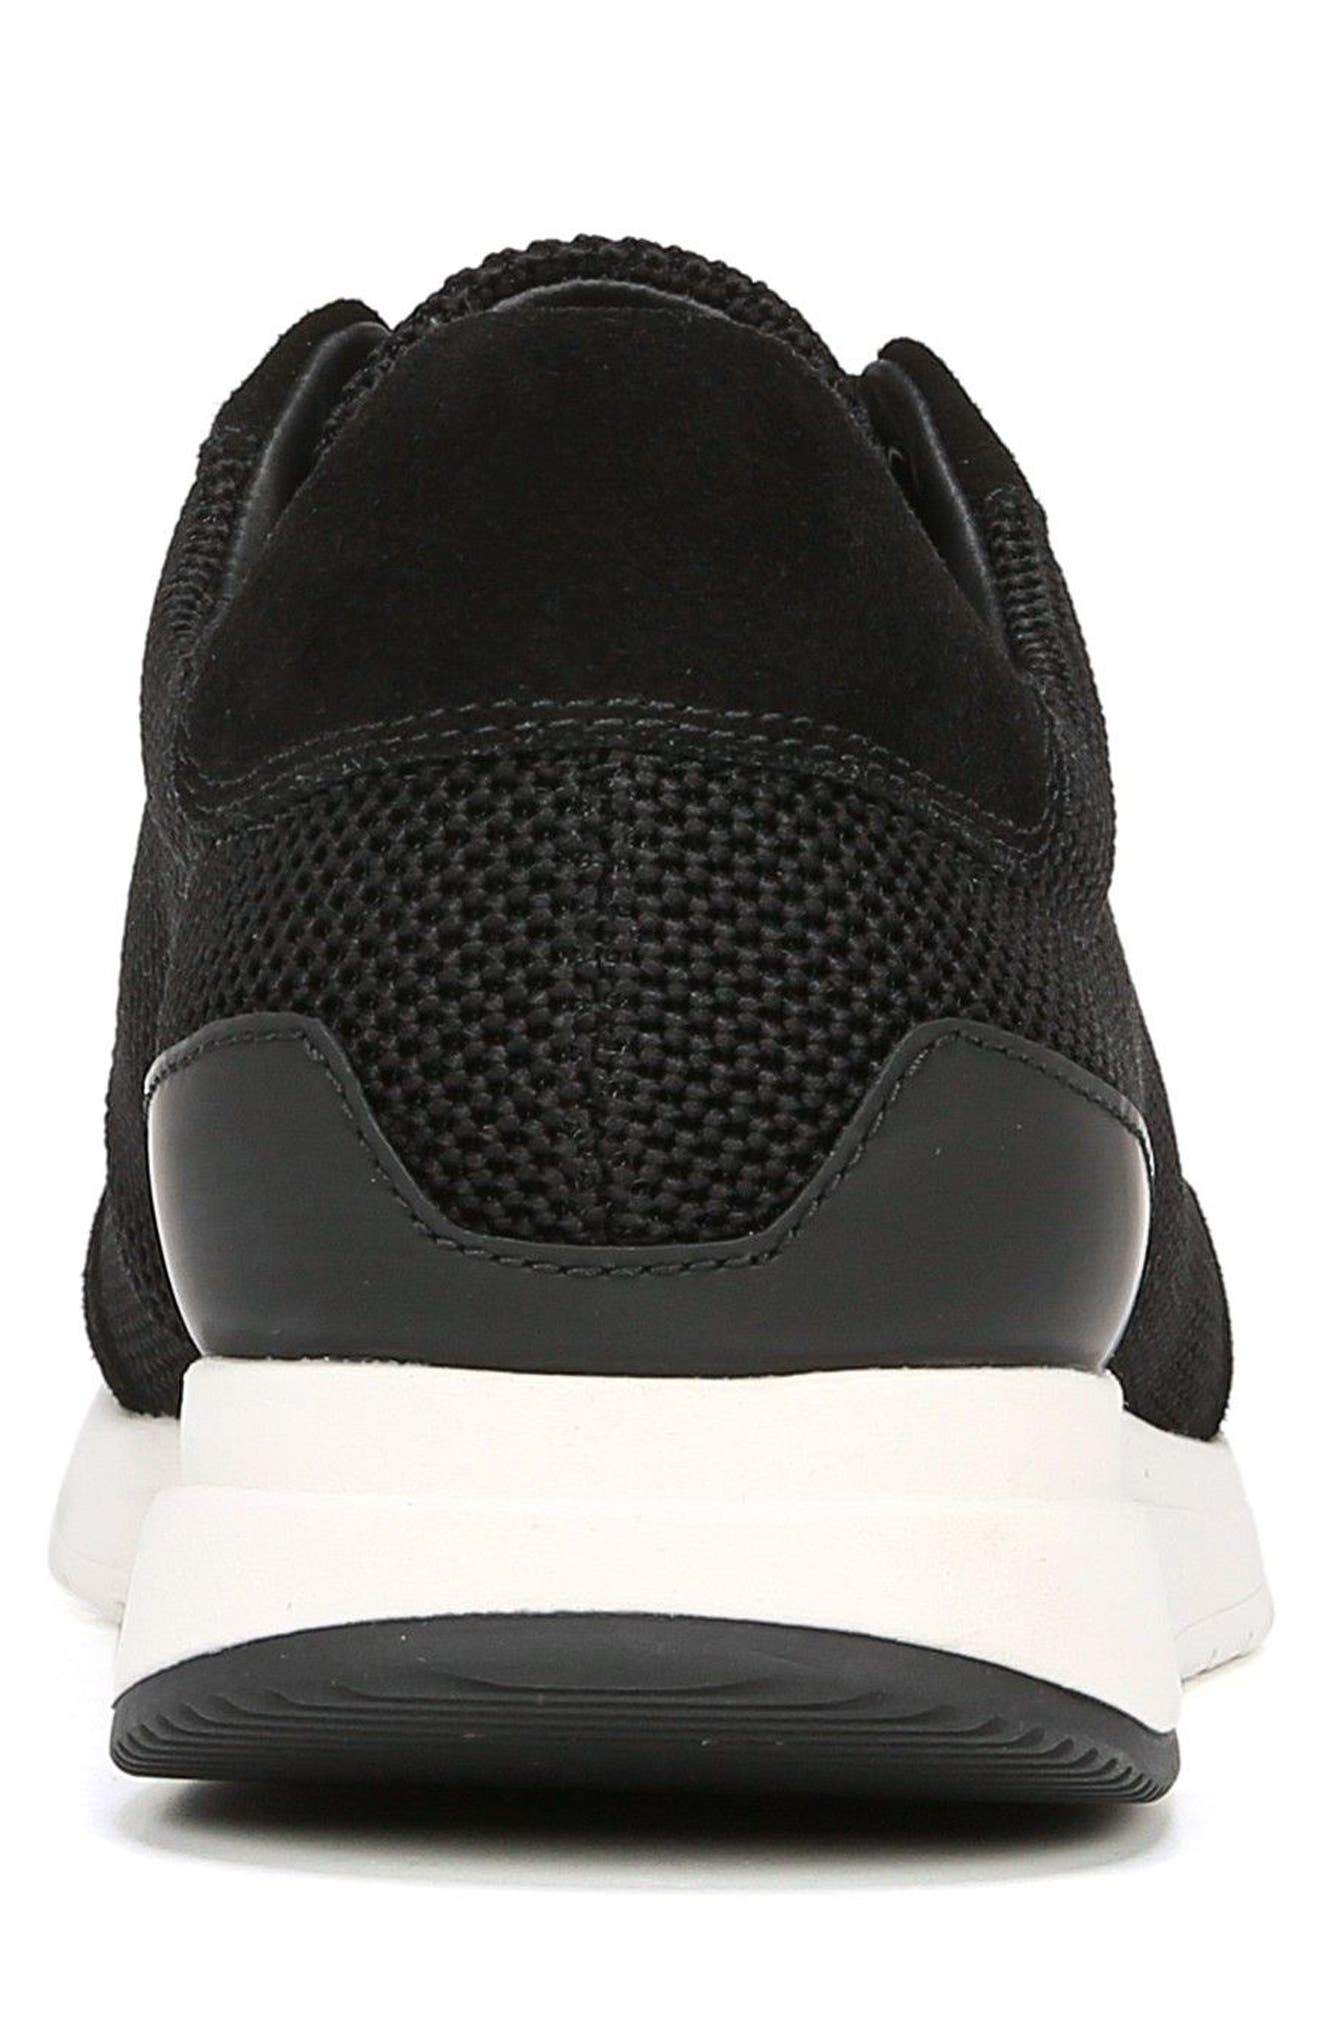 Payton Mesh Sneaker,                             Alternate thumbnail 7, color,                             BLACK